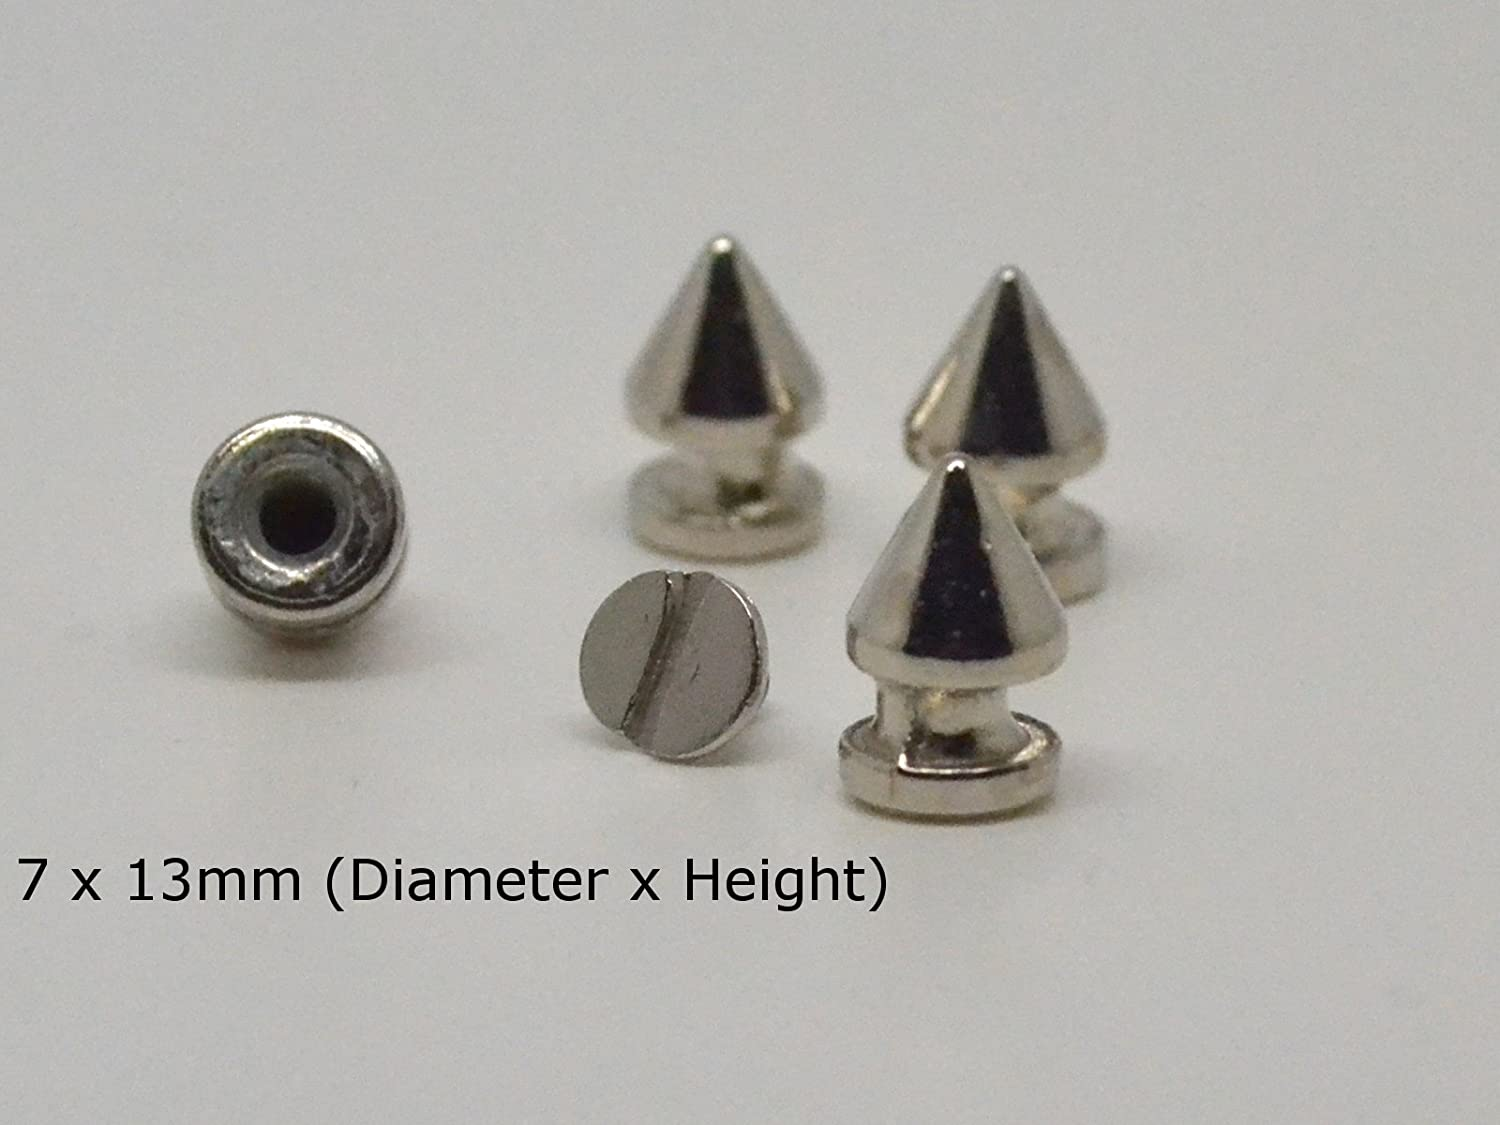 50 x Silver 7 x 13mm EIMASS® Premium Alloy Screw-Back Spike Cone Rivet Bullet Studs, DIY Craft, Embellish Shoes, Bags, Costumes, Converses, Customise Personal Items